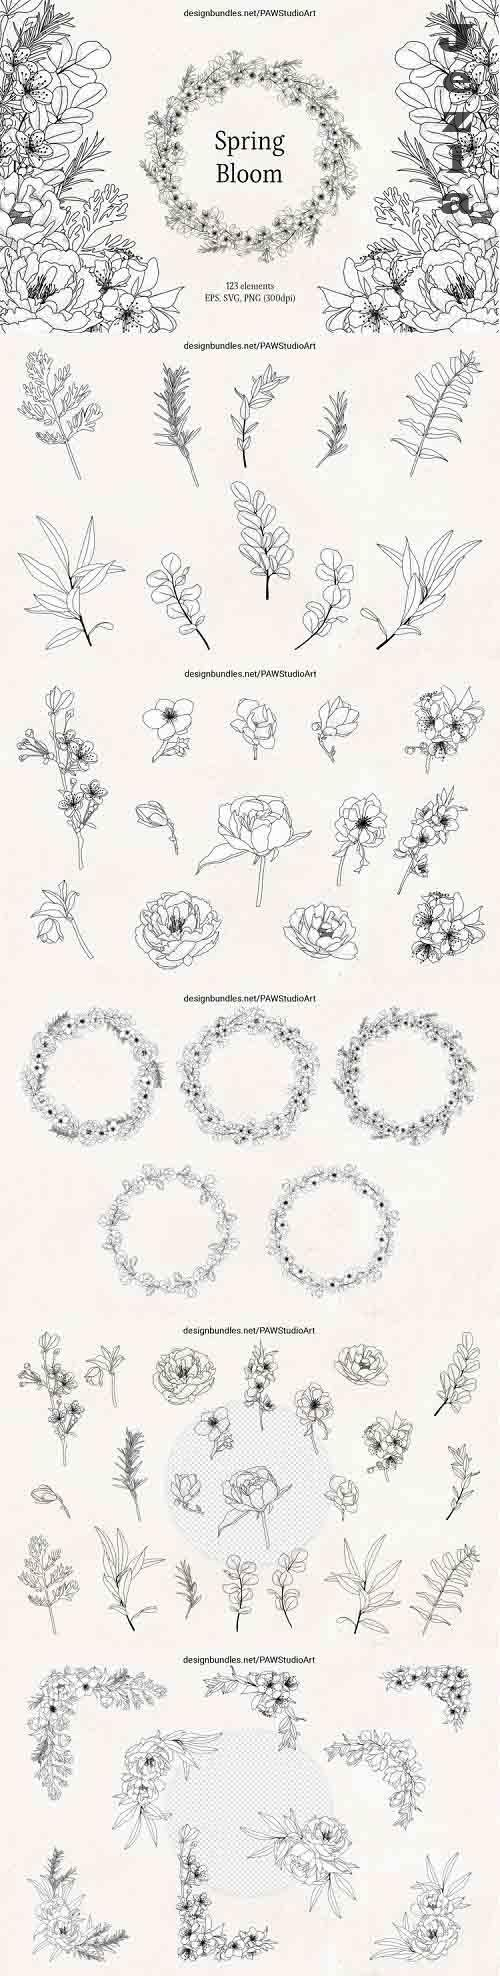 Floral Sketch Line Art Flower SVG Frame Botanical Monogram - 1268800